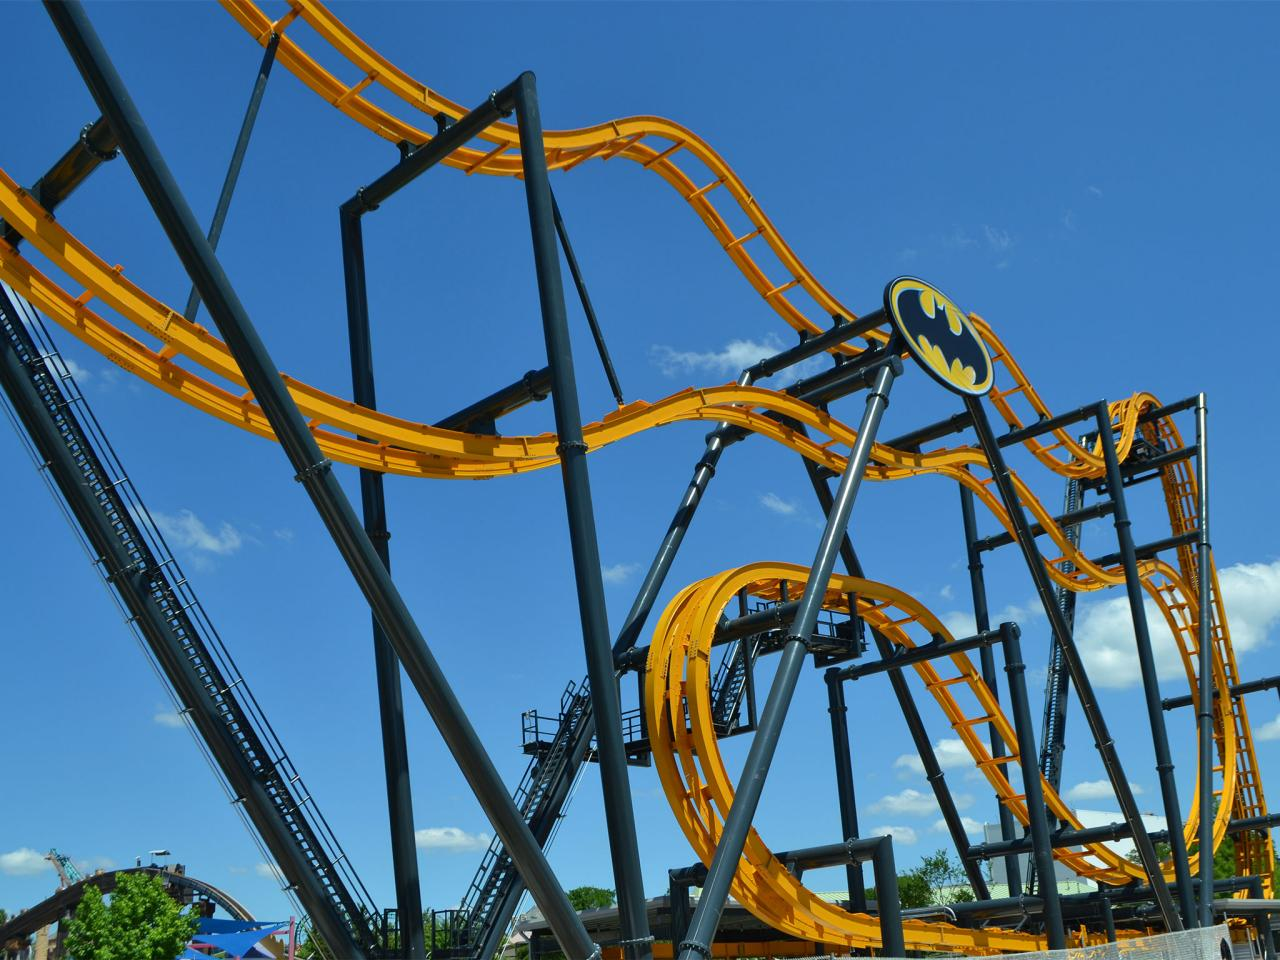 Six flags Fiesta Texas, San Antonio